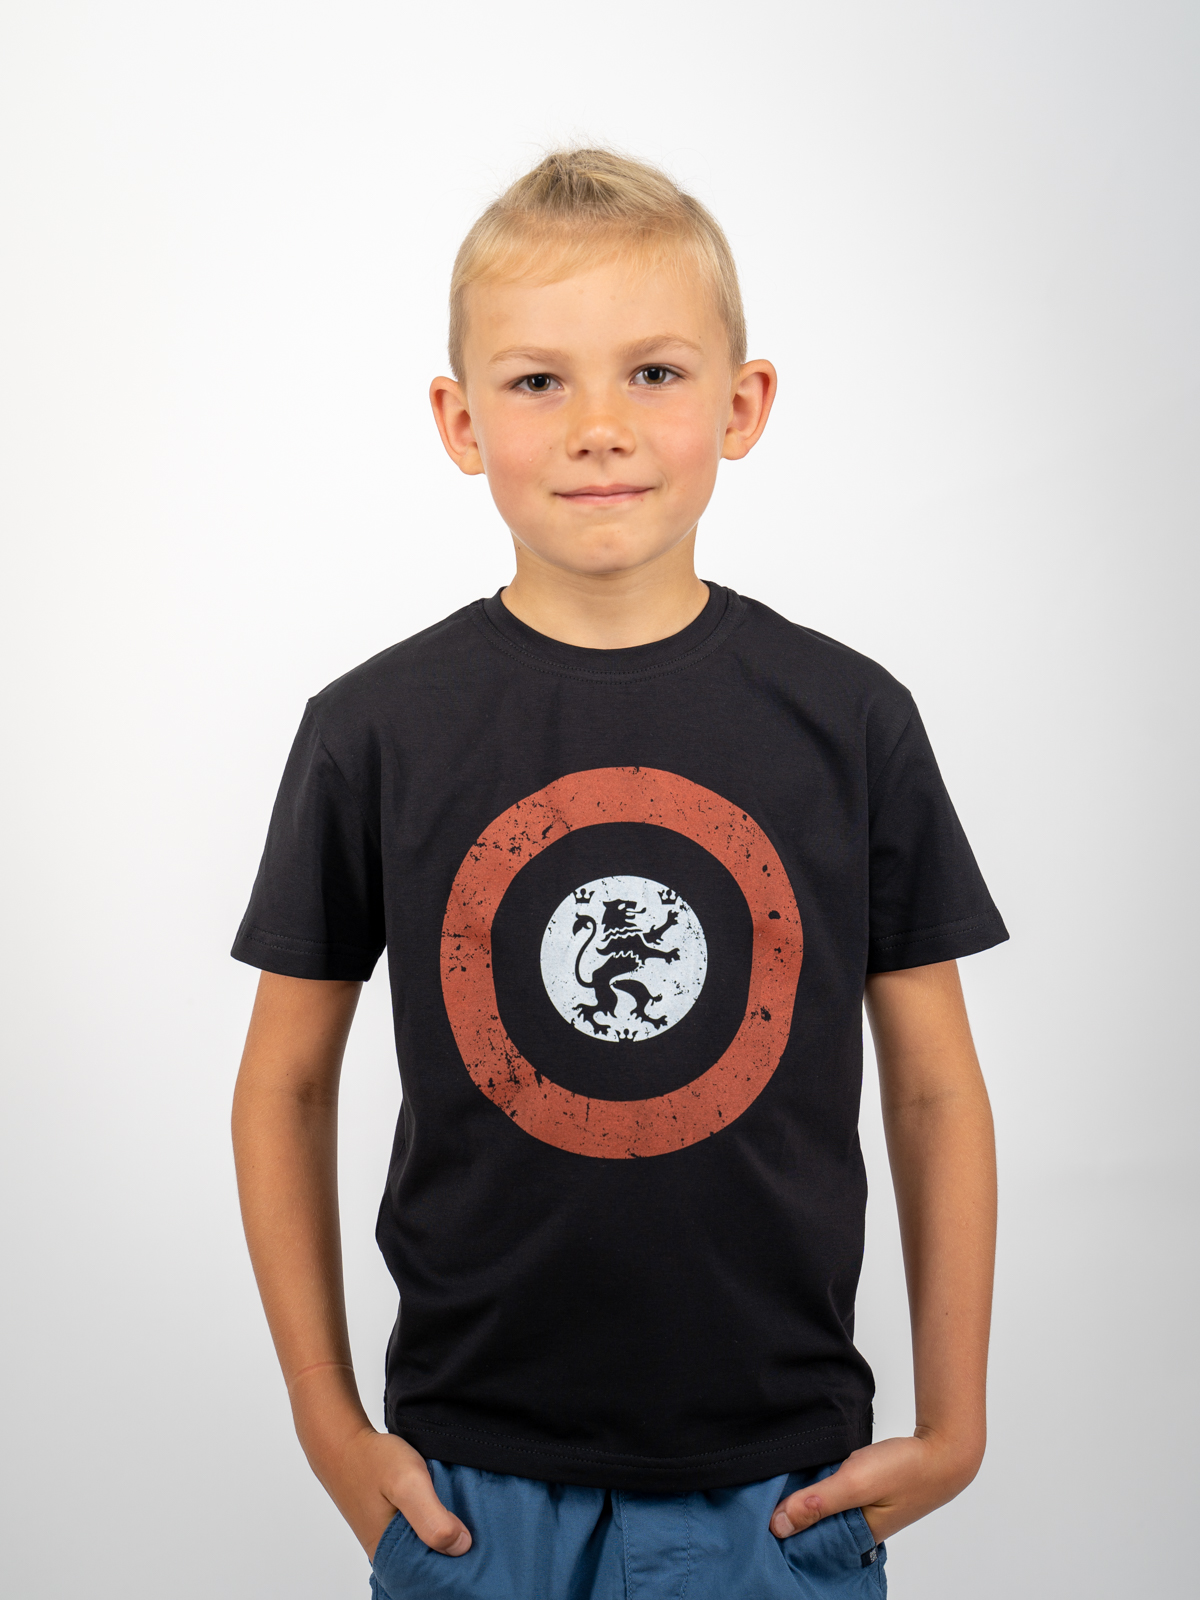 Kids T-Shirt Lion (Roundel). Color black. Unisex T-shirt, well suited for both boys and girls.